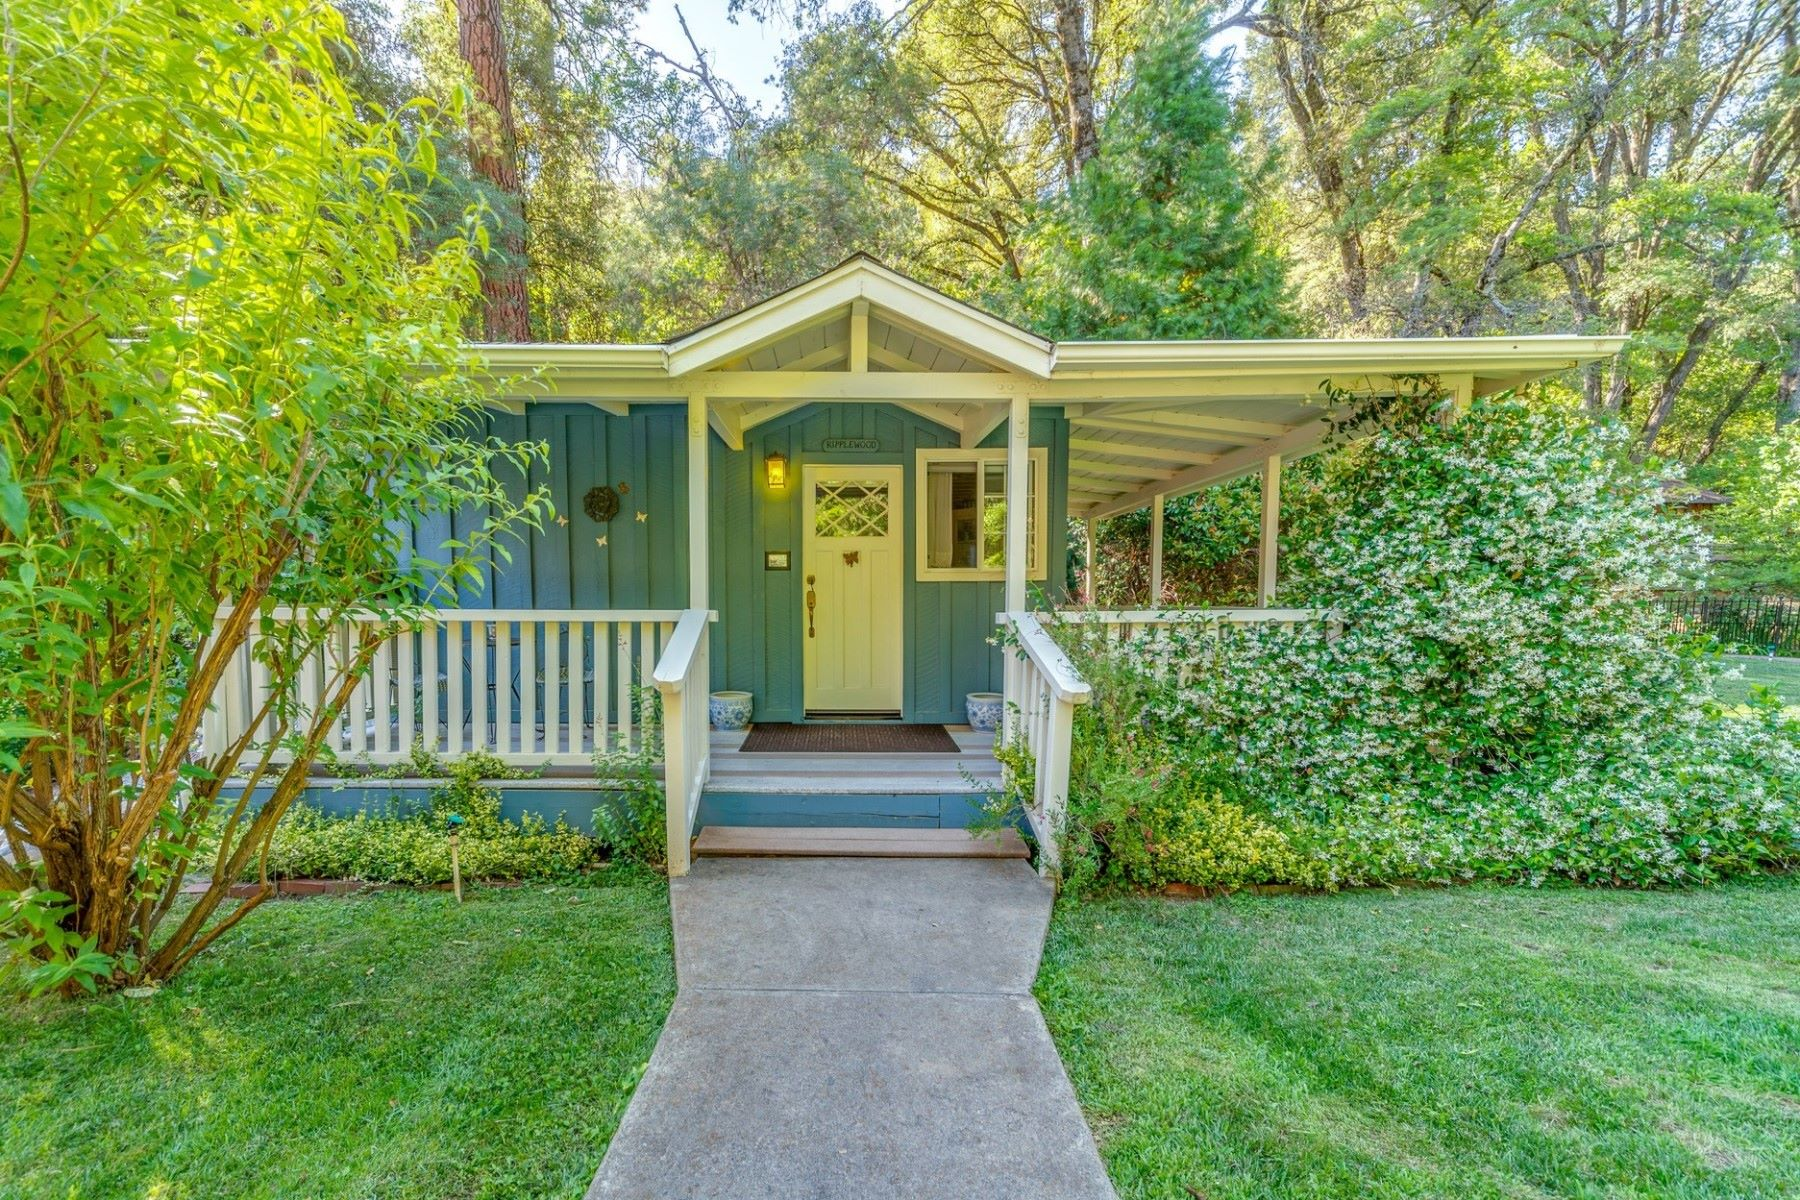 Additional photo for property listing at Creekside Country Retreat 2455 Murphys Grade Road Murphys, California 95247 United States